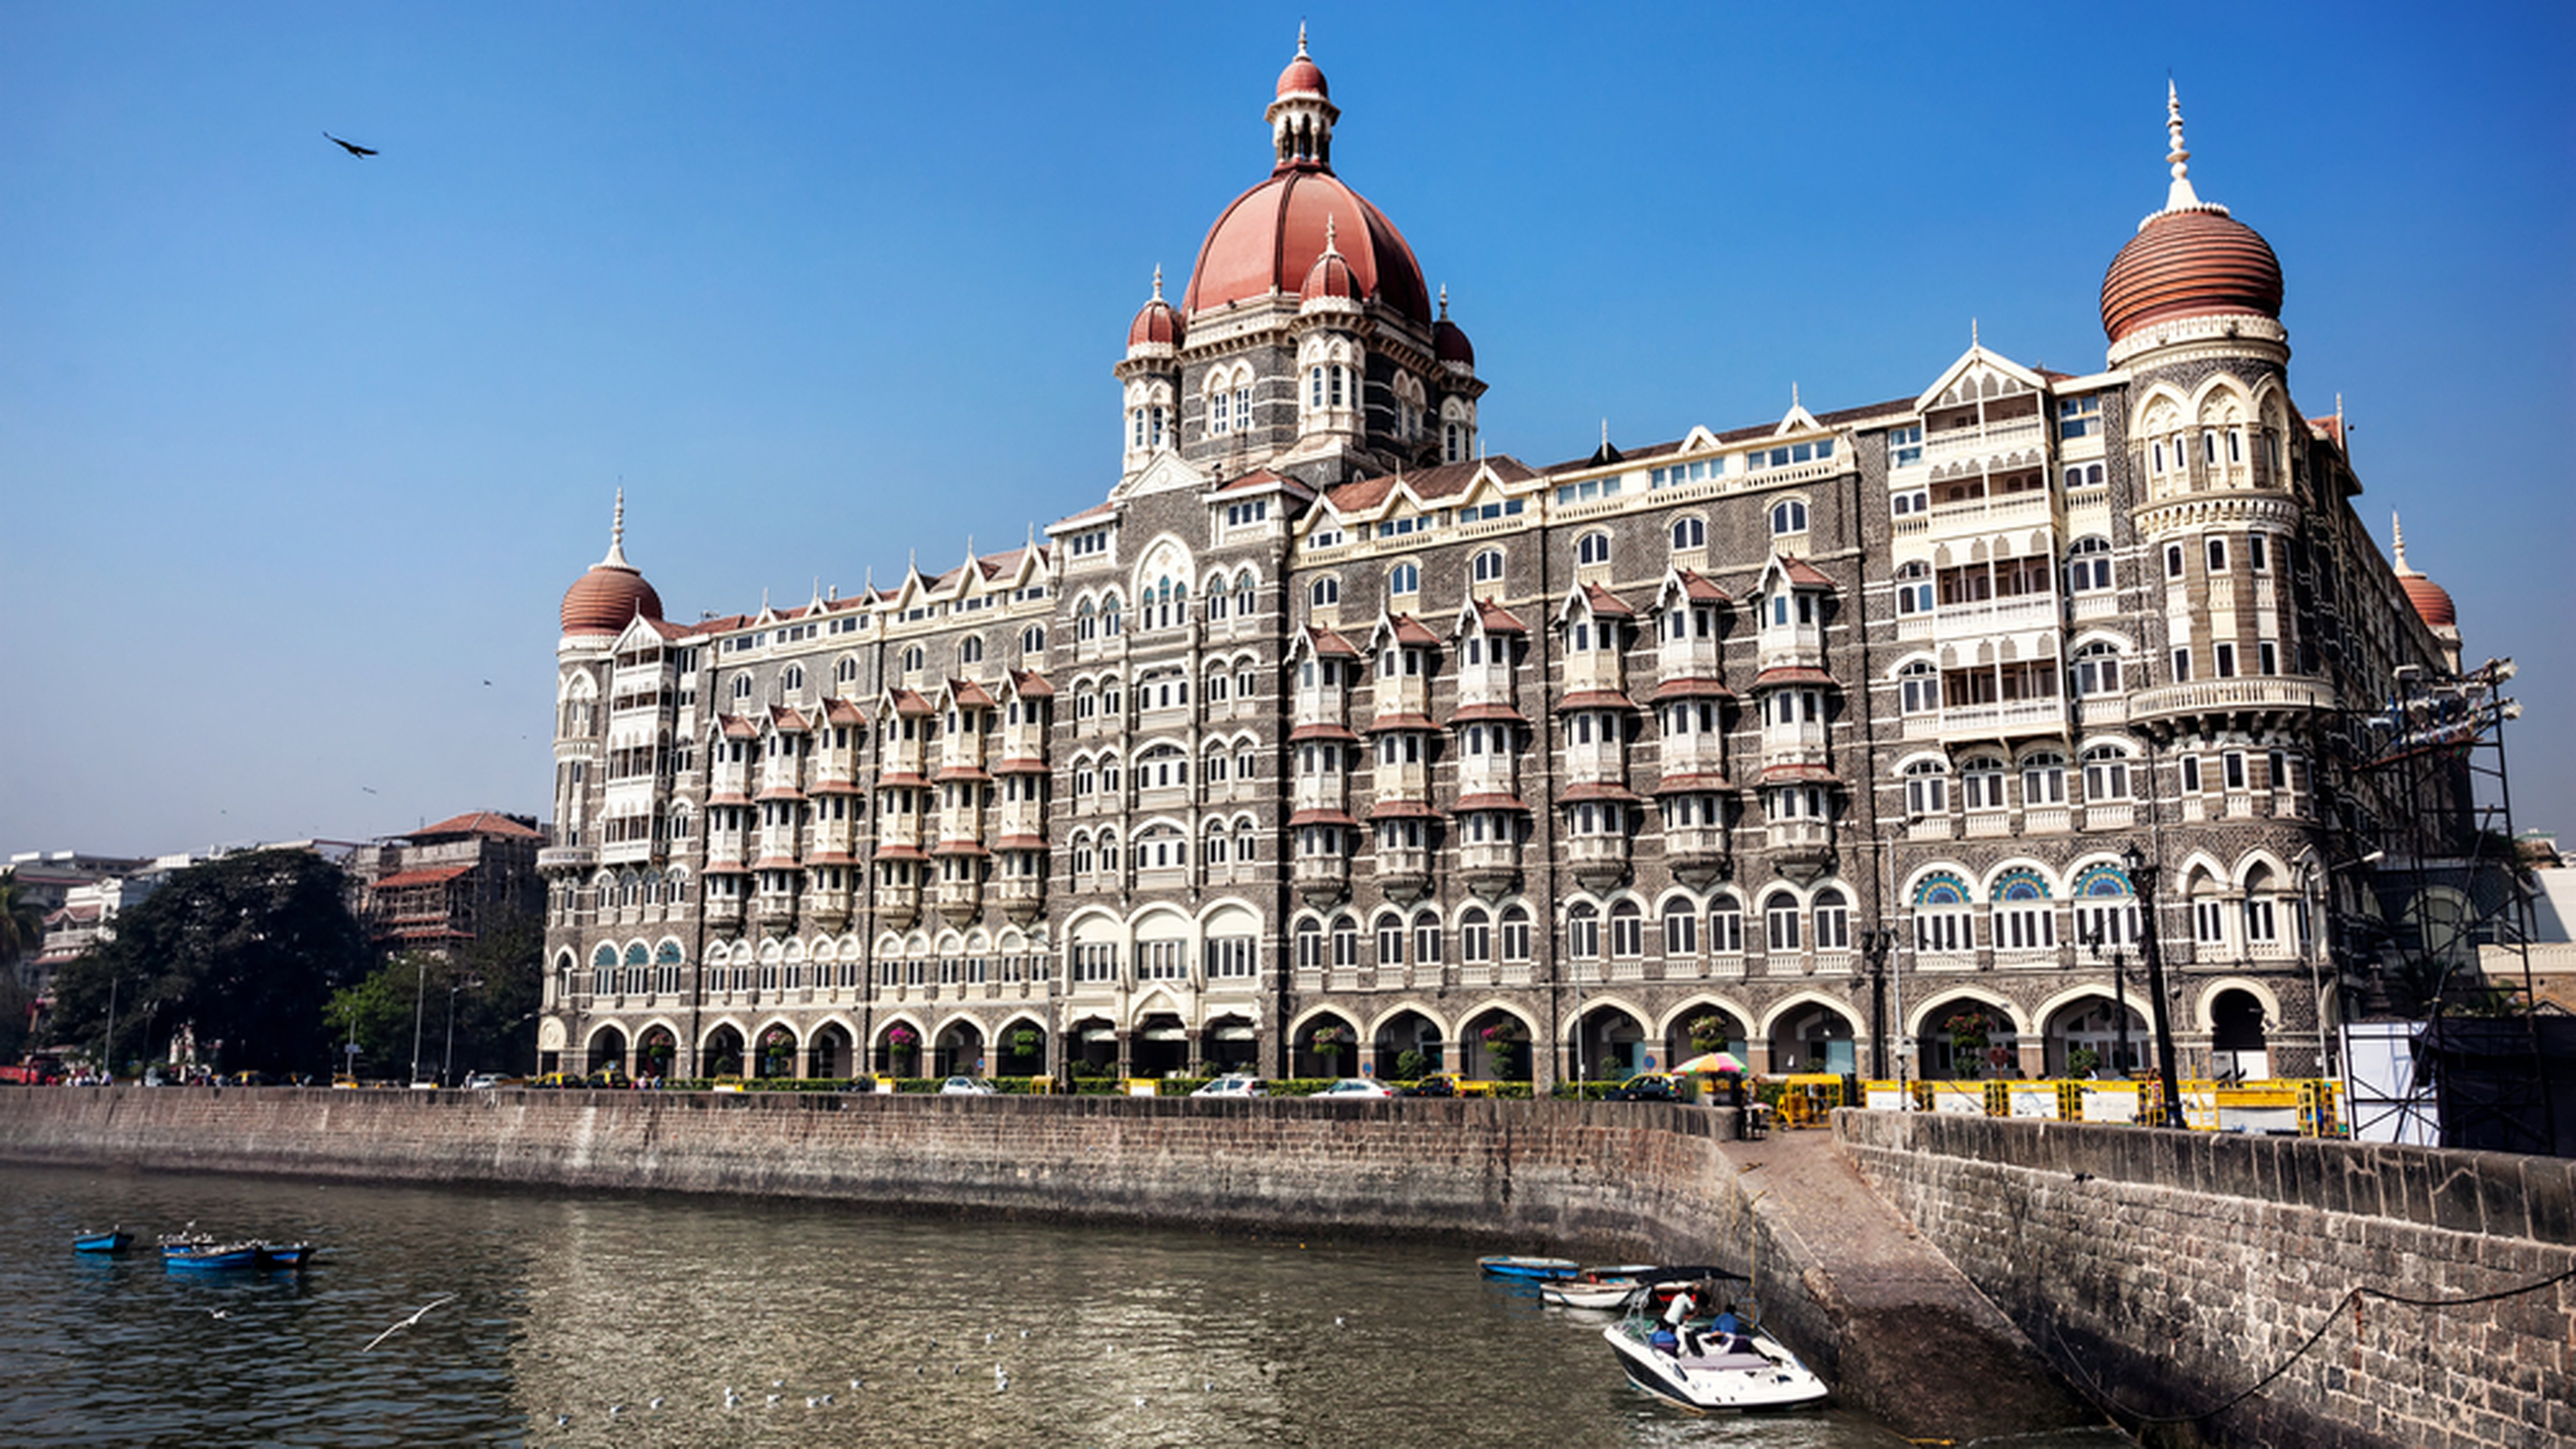 Mumbai's Taj Mahal hotel was one of the sites that was attacked on November 26, 2008.